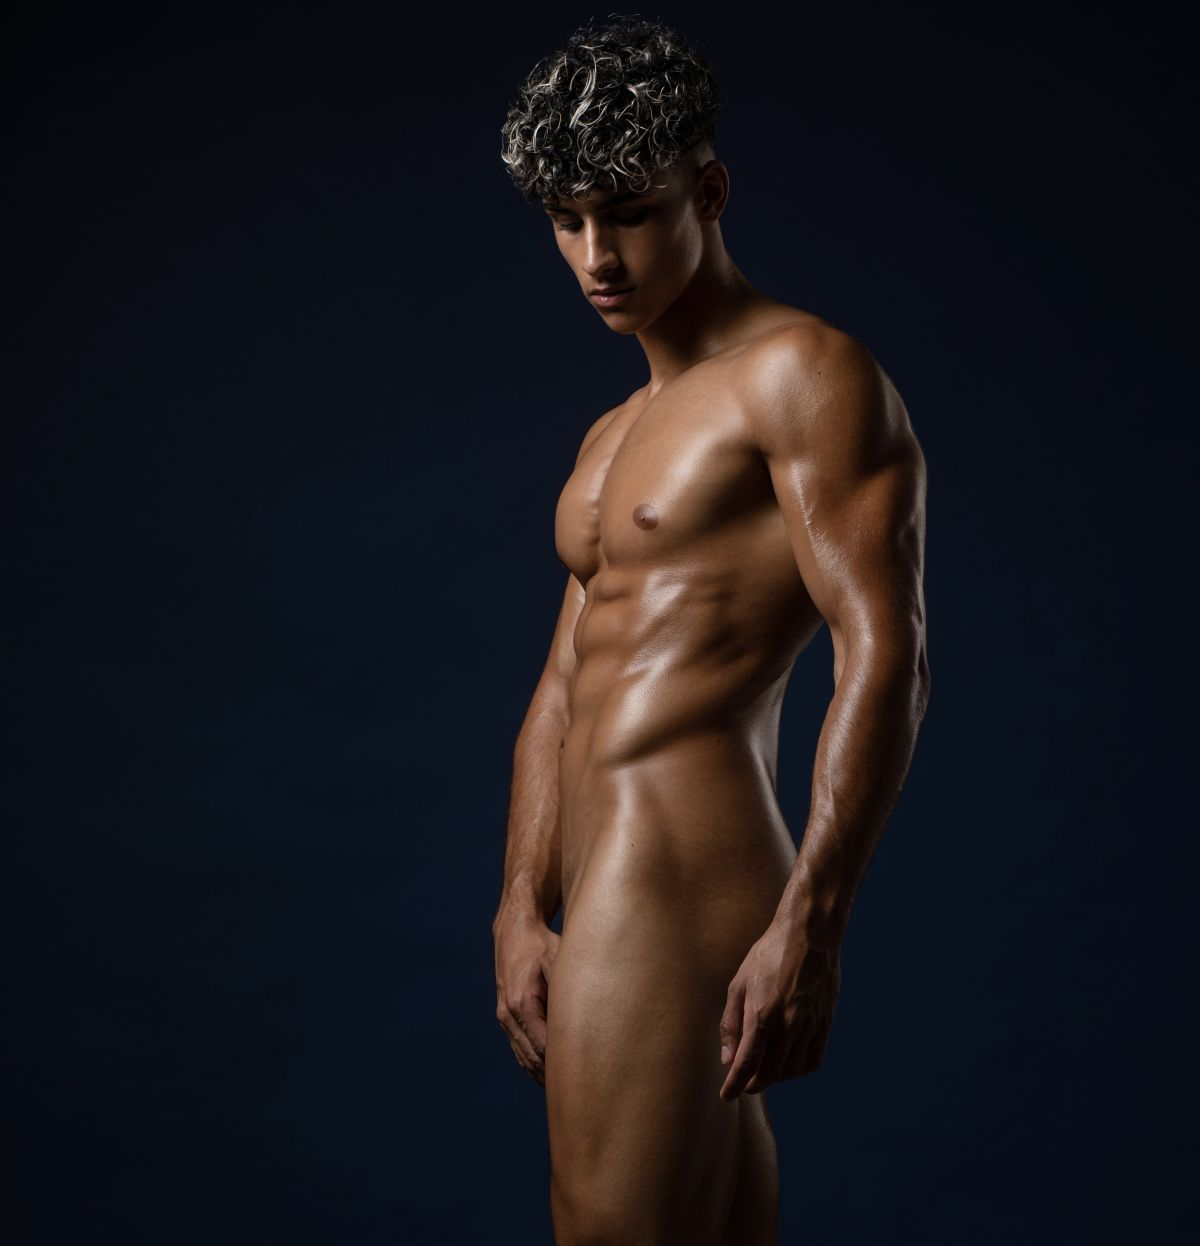 Hunksep nude photos onlyfans leaked